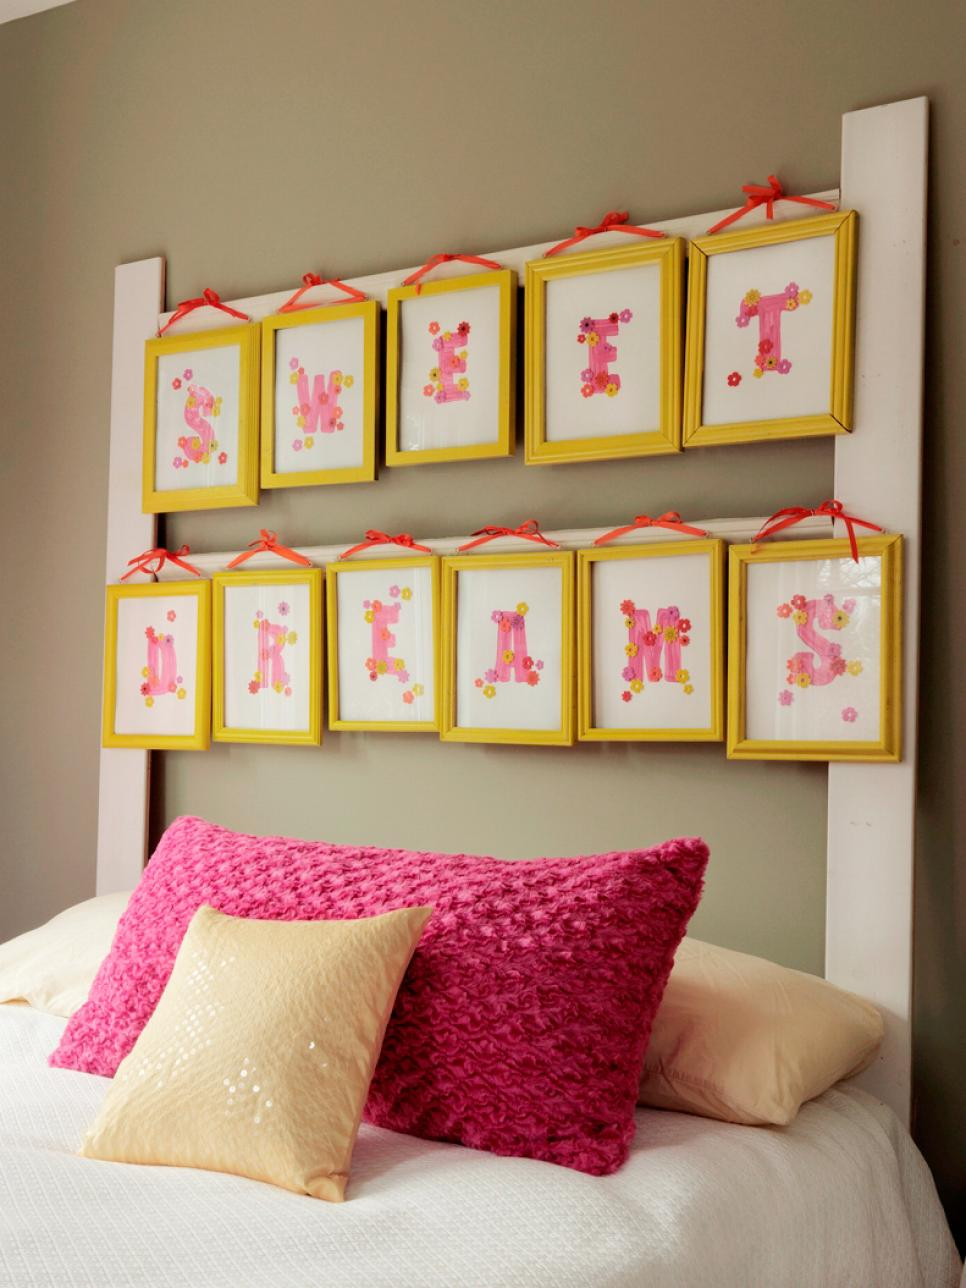 Living Room Diy Ideas For Home Decor 15 easy diy headboards home decor and decorating ideas duct tape headboard